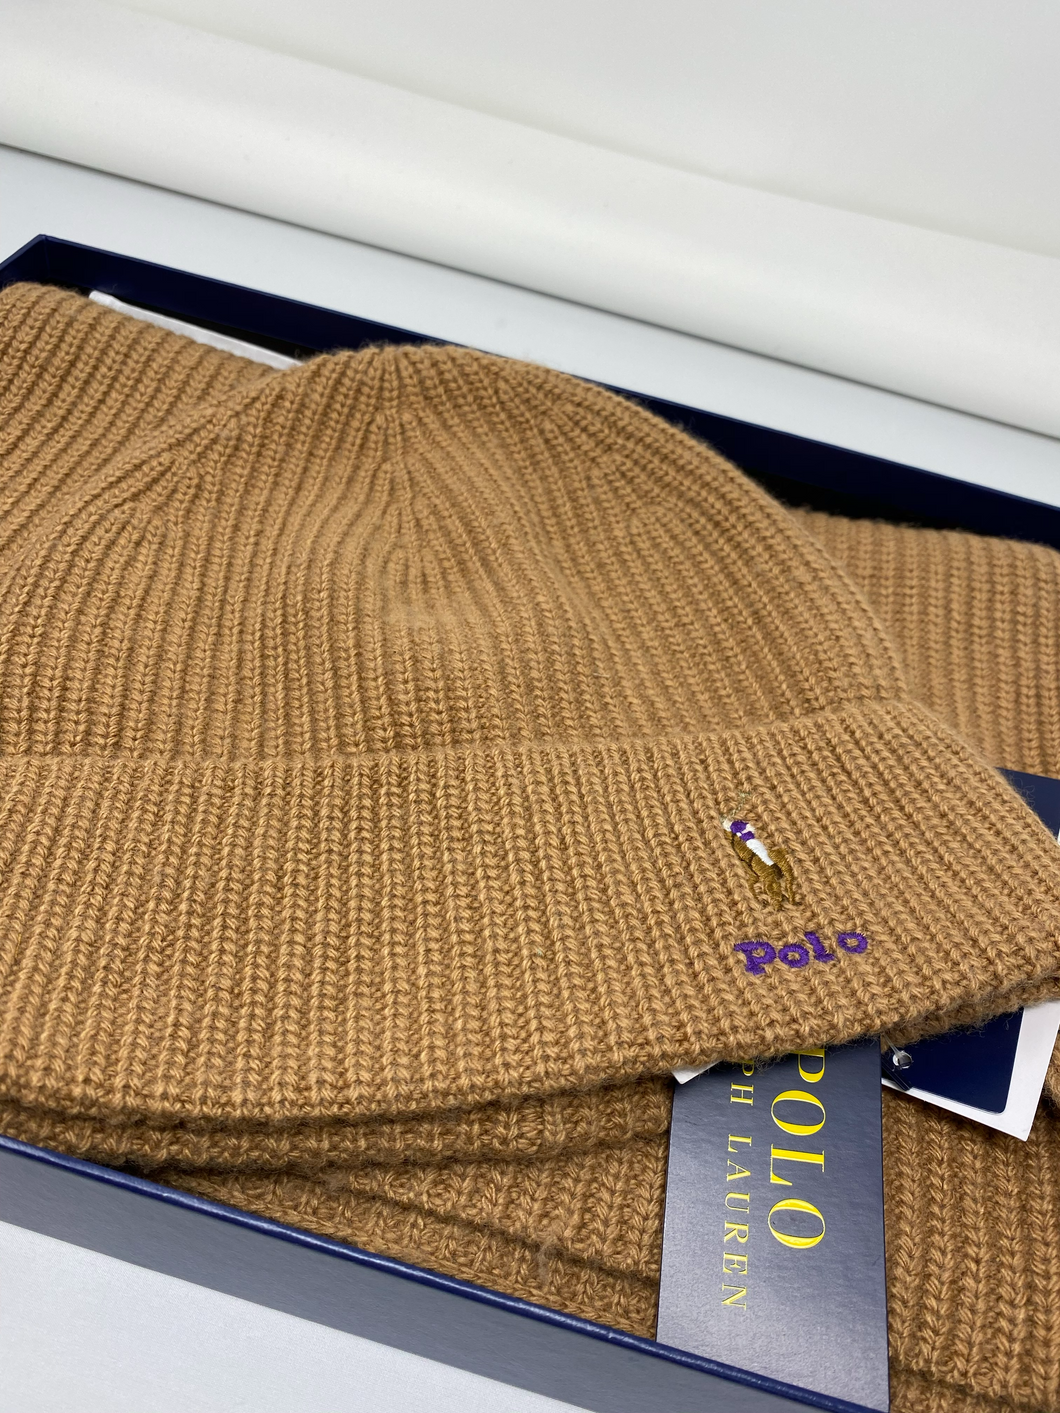 Ralph Lauren Polo - Hat & Scarf Set - Brand New